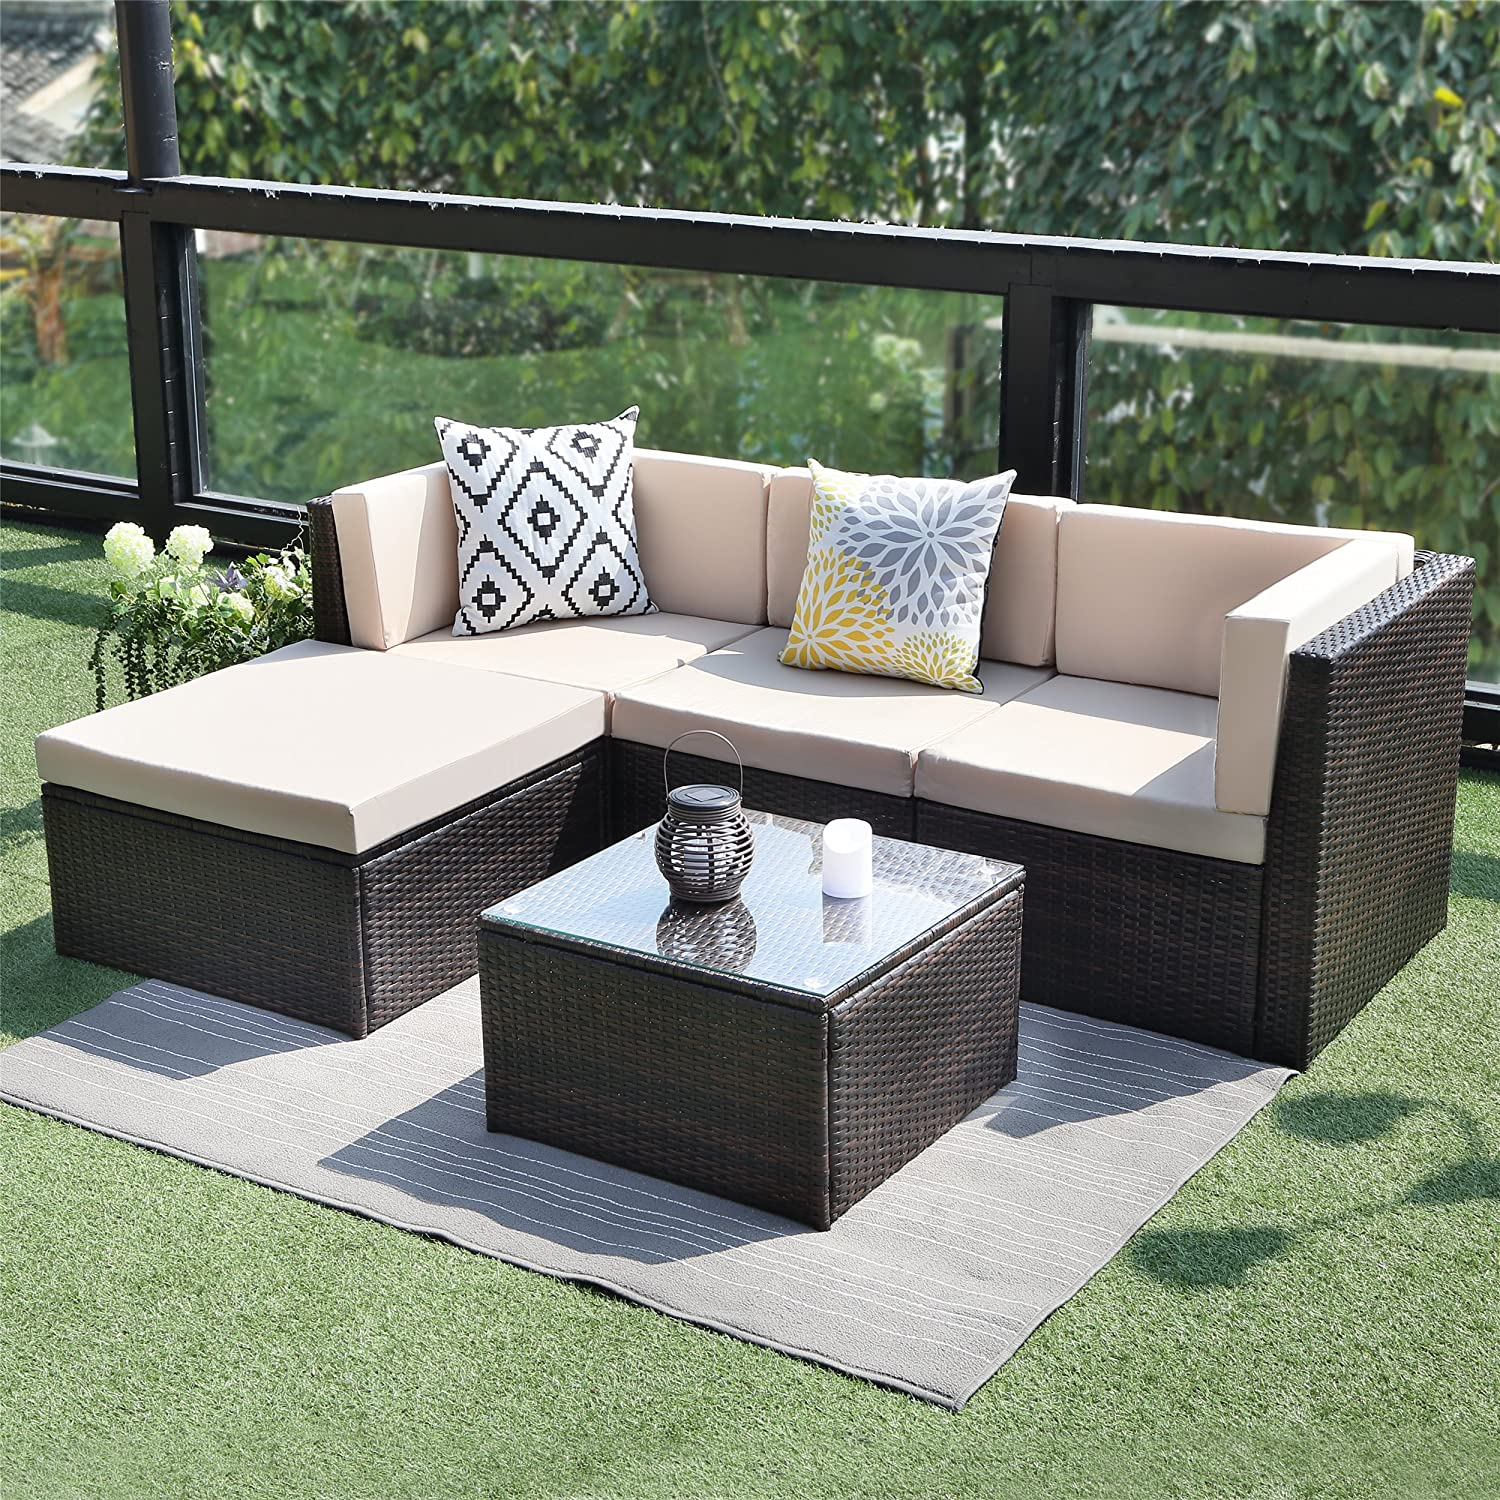 patio gray best sofa outdoor choice com removable couch furniture wicker products steel cushions garden frame dp seat amazon w